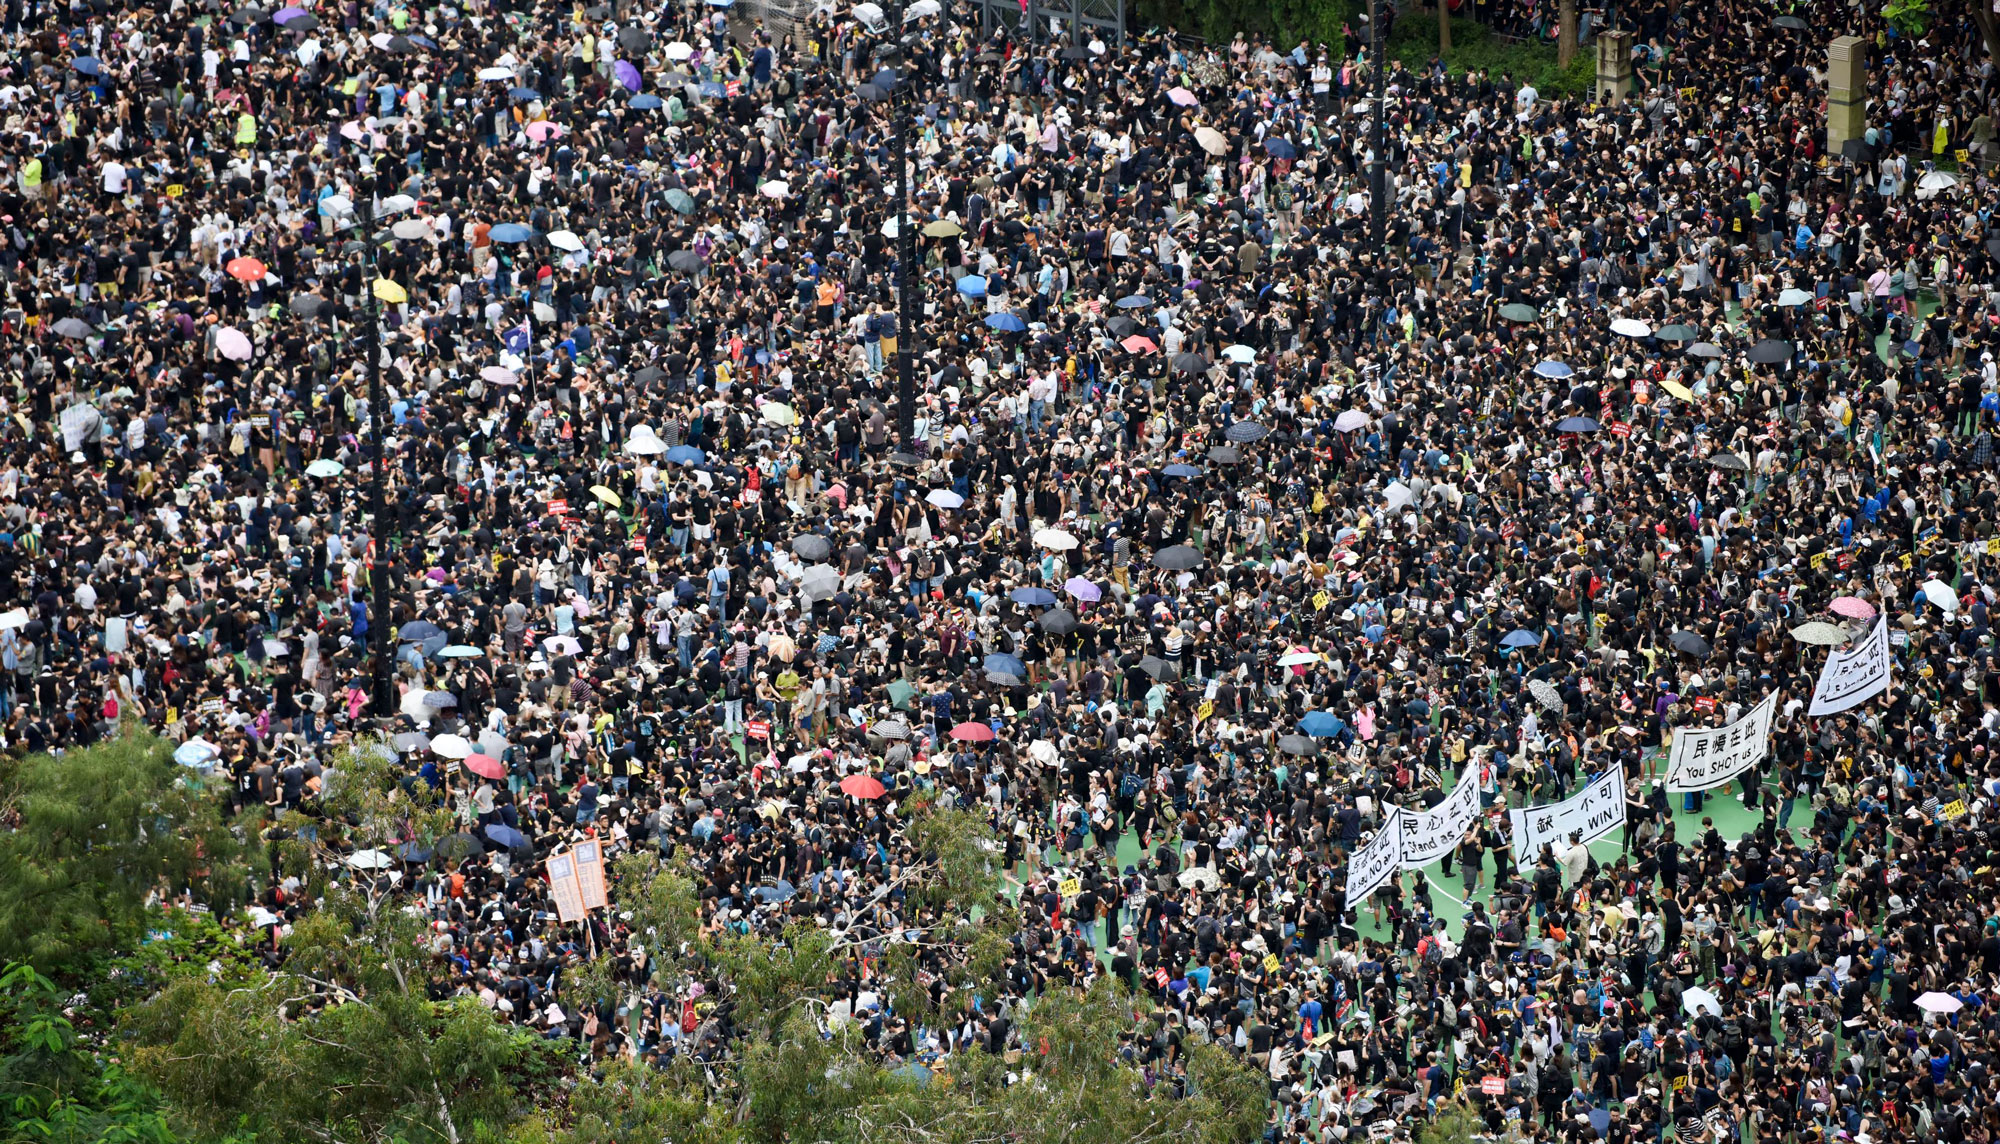 Protestors gather in Hong Kong's Victoria Park on Sunday August 18 2019